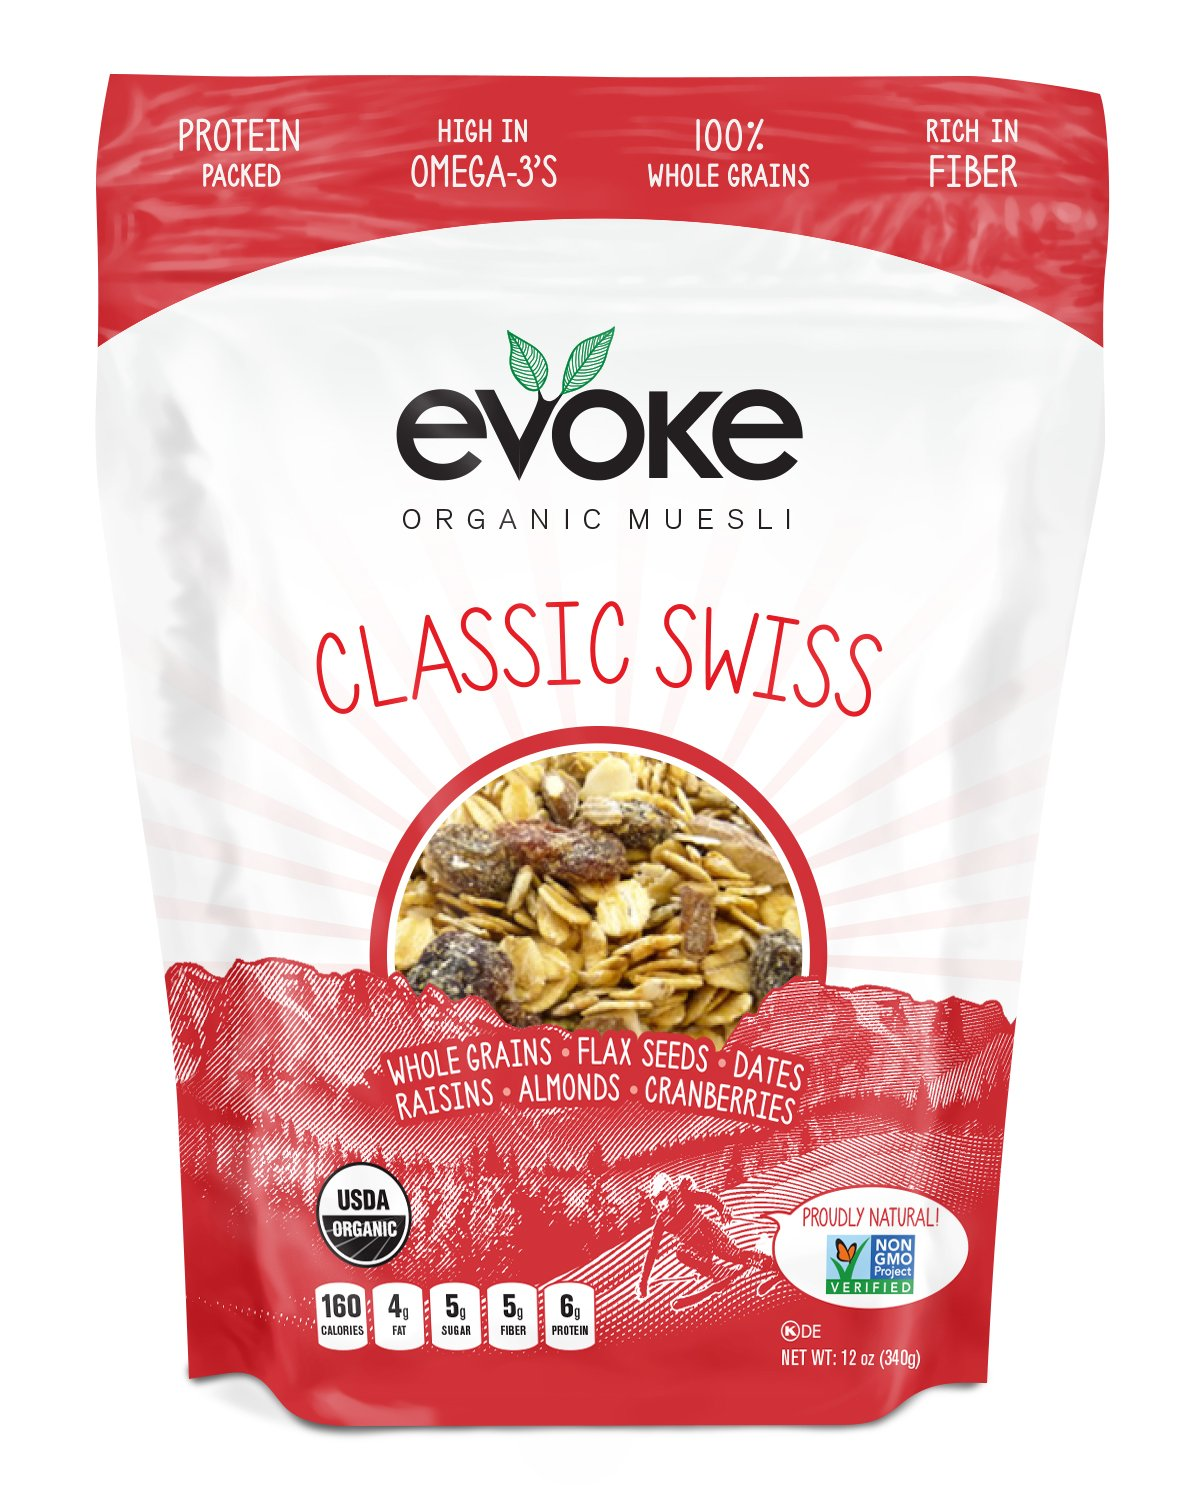 Organic Muesli, Classic Swiss, 12 ounces, PACK OF 4